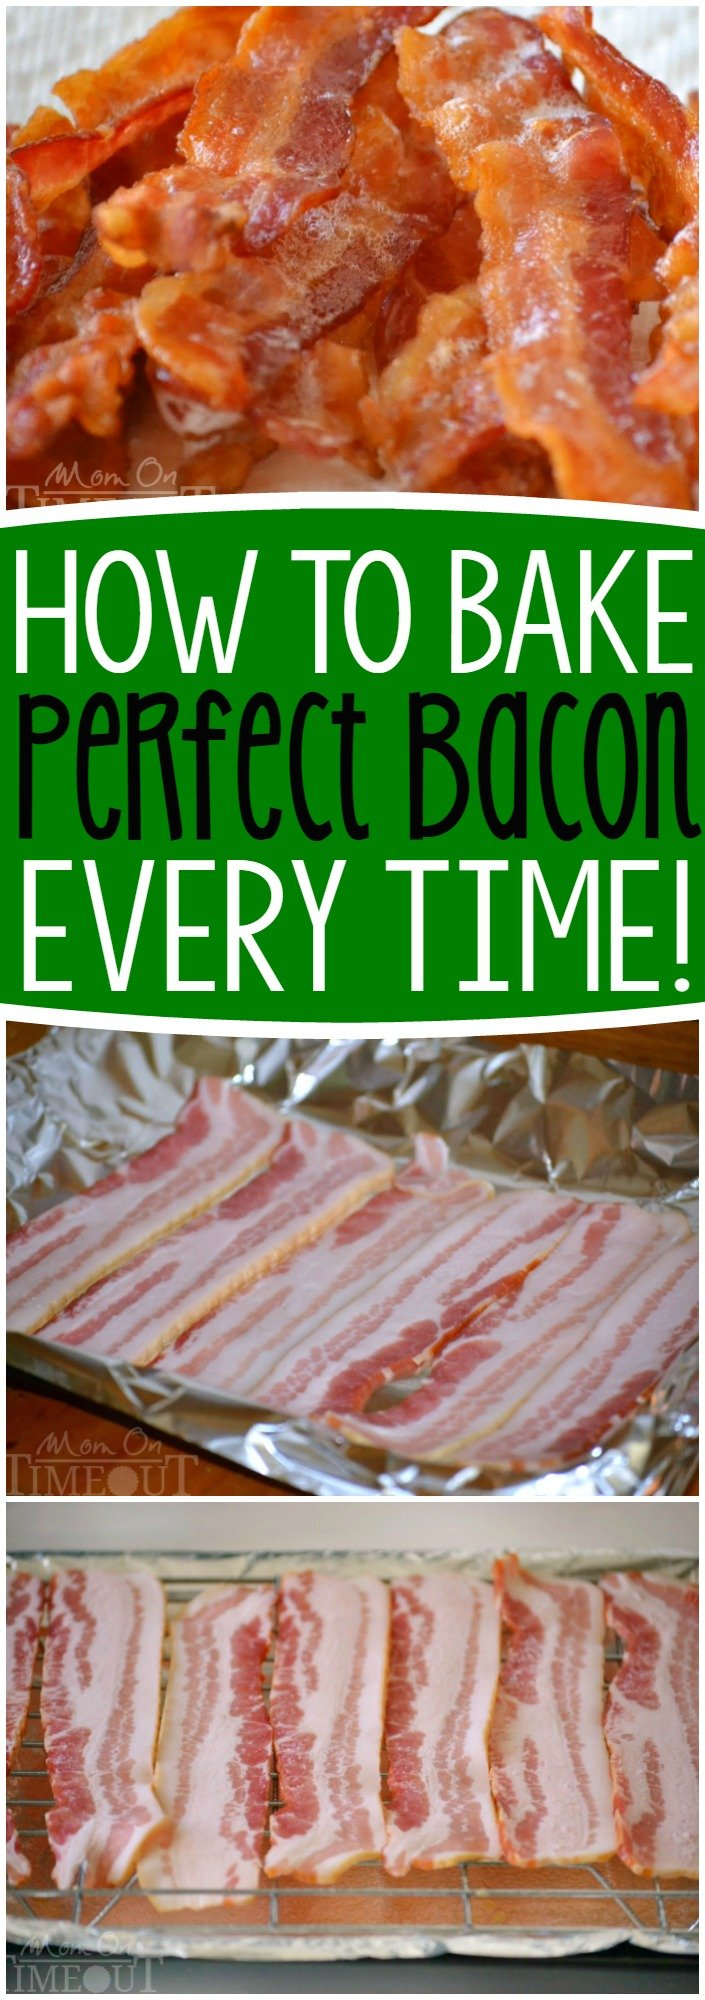 Everybody Loves Bacon, Right? Let Me Show You How To Make Perfect Bacon  Every